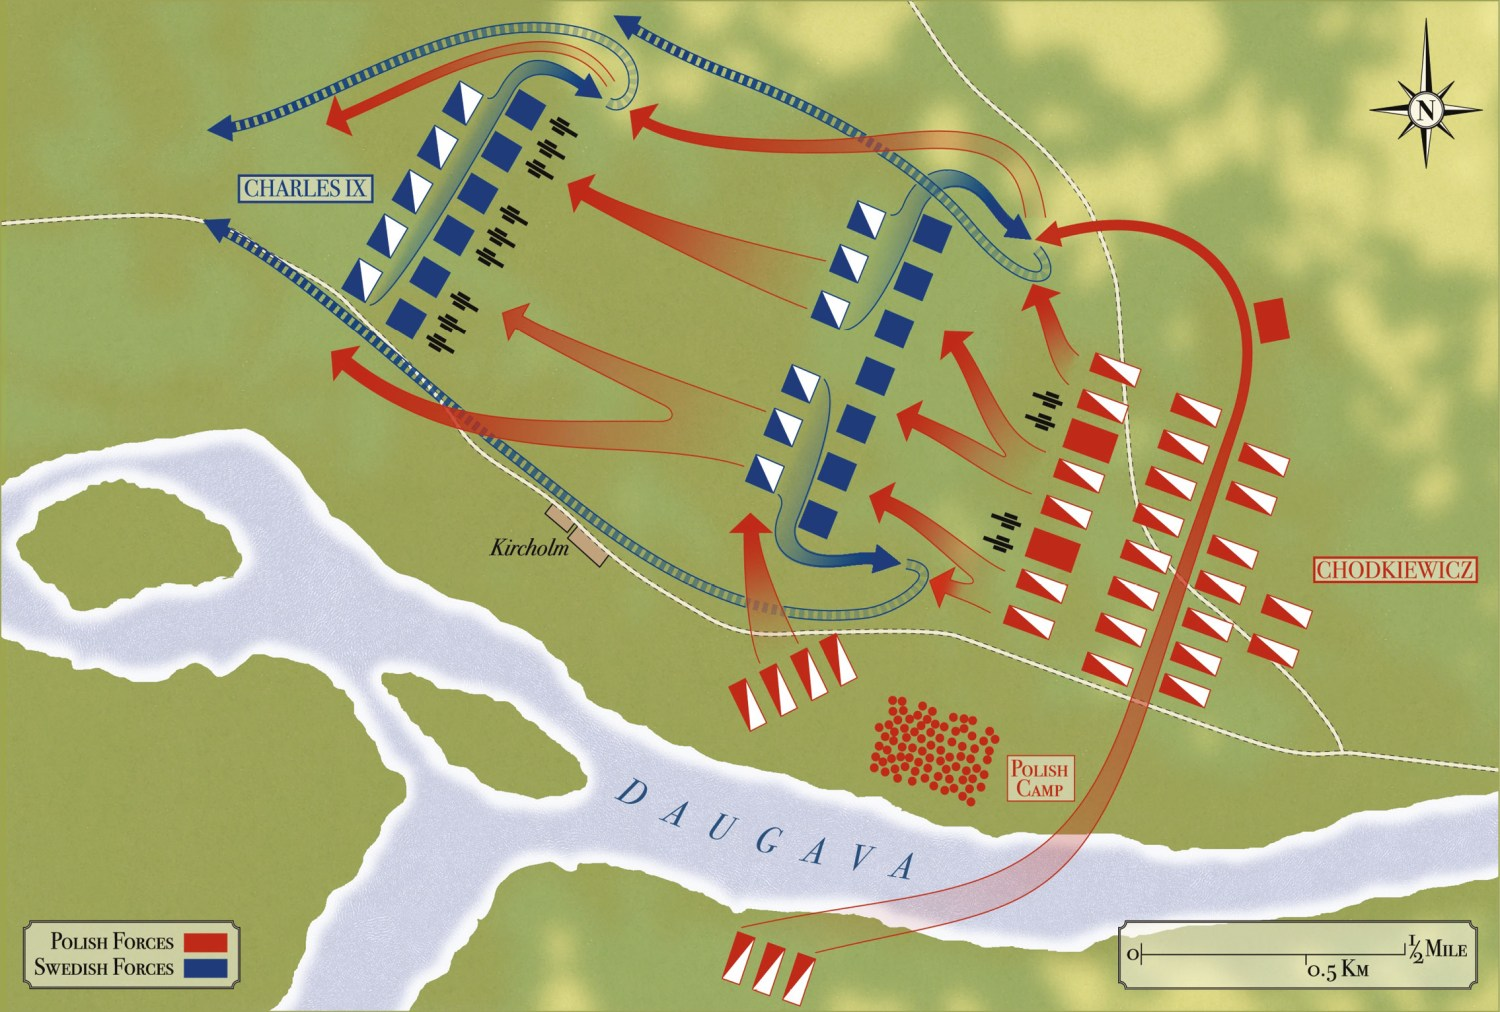 ABOVE The Battle of Kircholm, 27 September 1605, showing the armies deployed at the start of the battle and the direction of the Polish-Lithuanian cavalry charges. (See the illustration at the head of the article for the situation at the climax of the battle.)